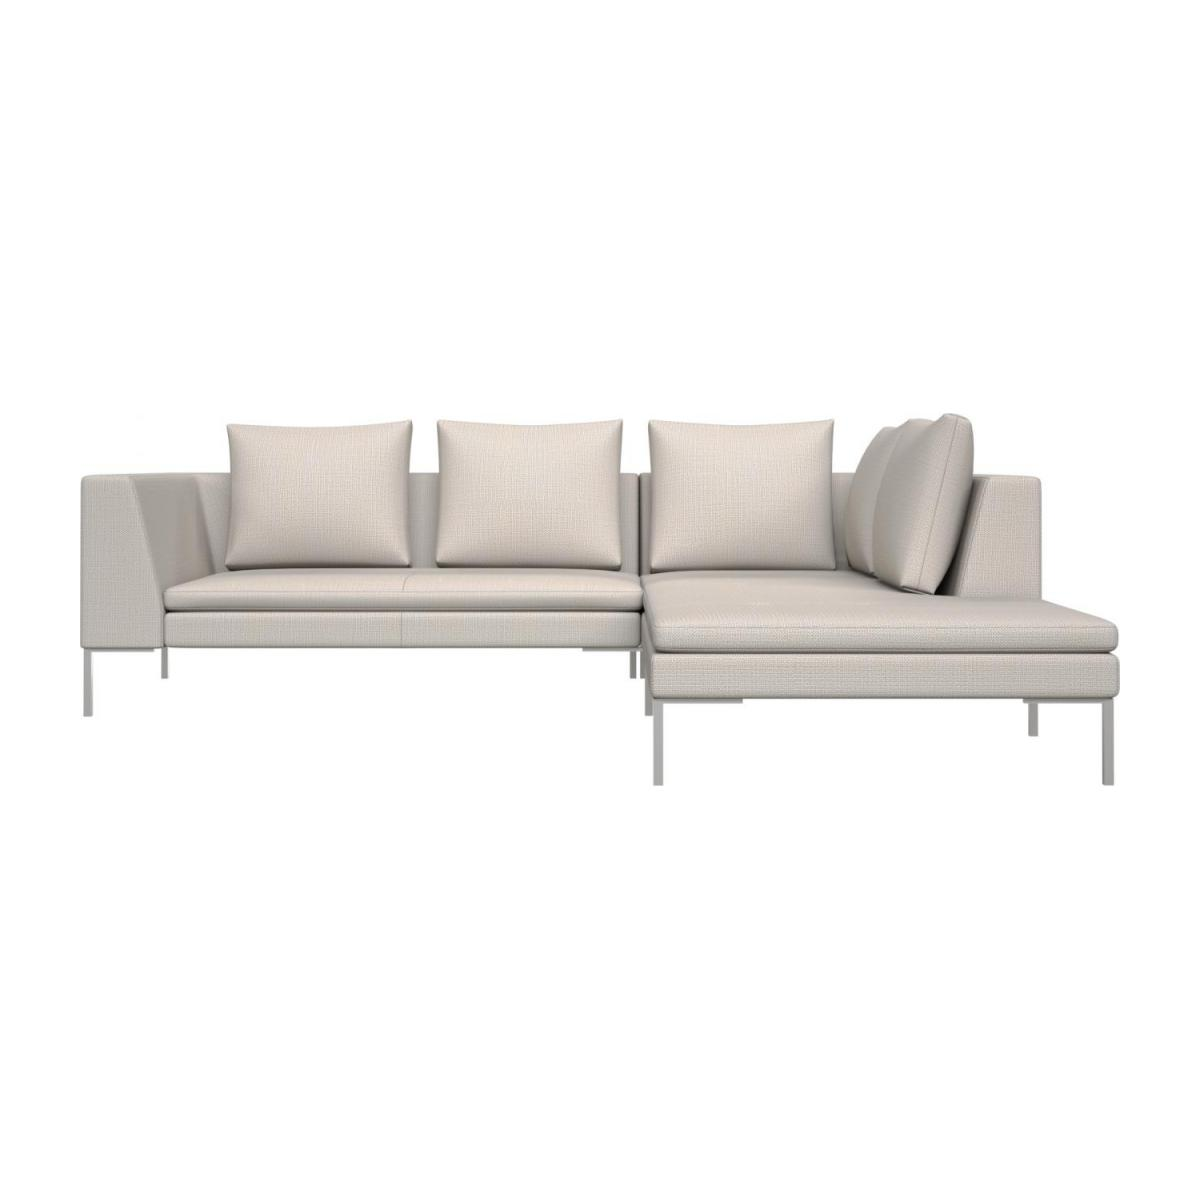 2 seater sofa with chaise longue on the right in Fasoli fabric, snow white  n°2